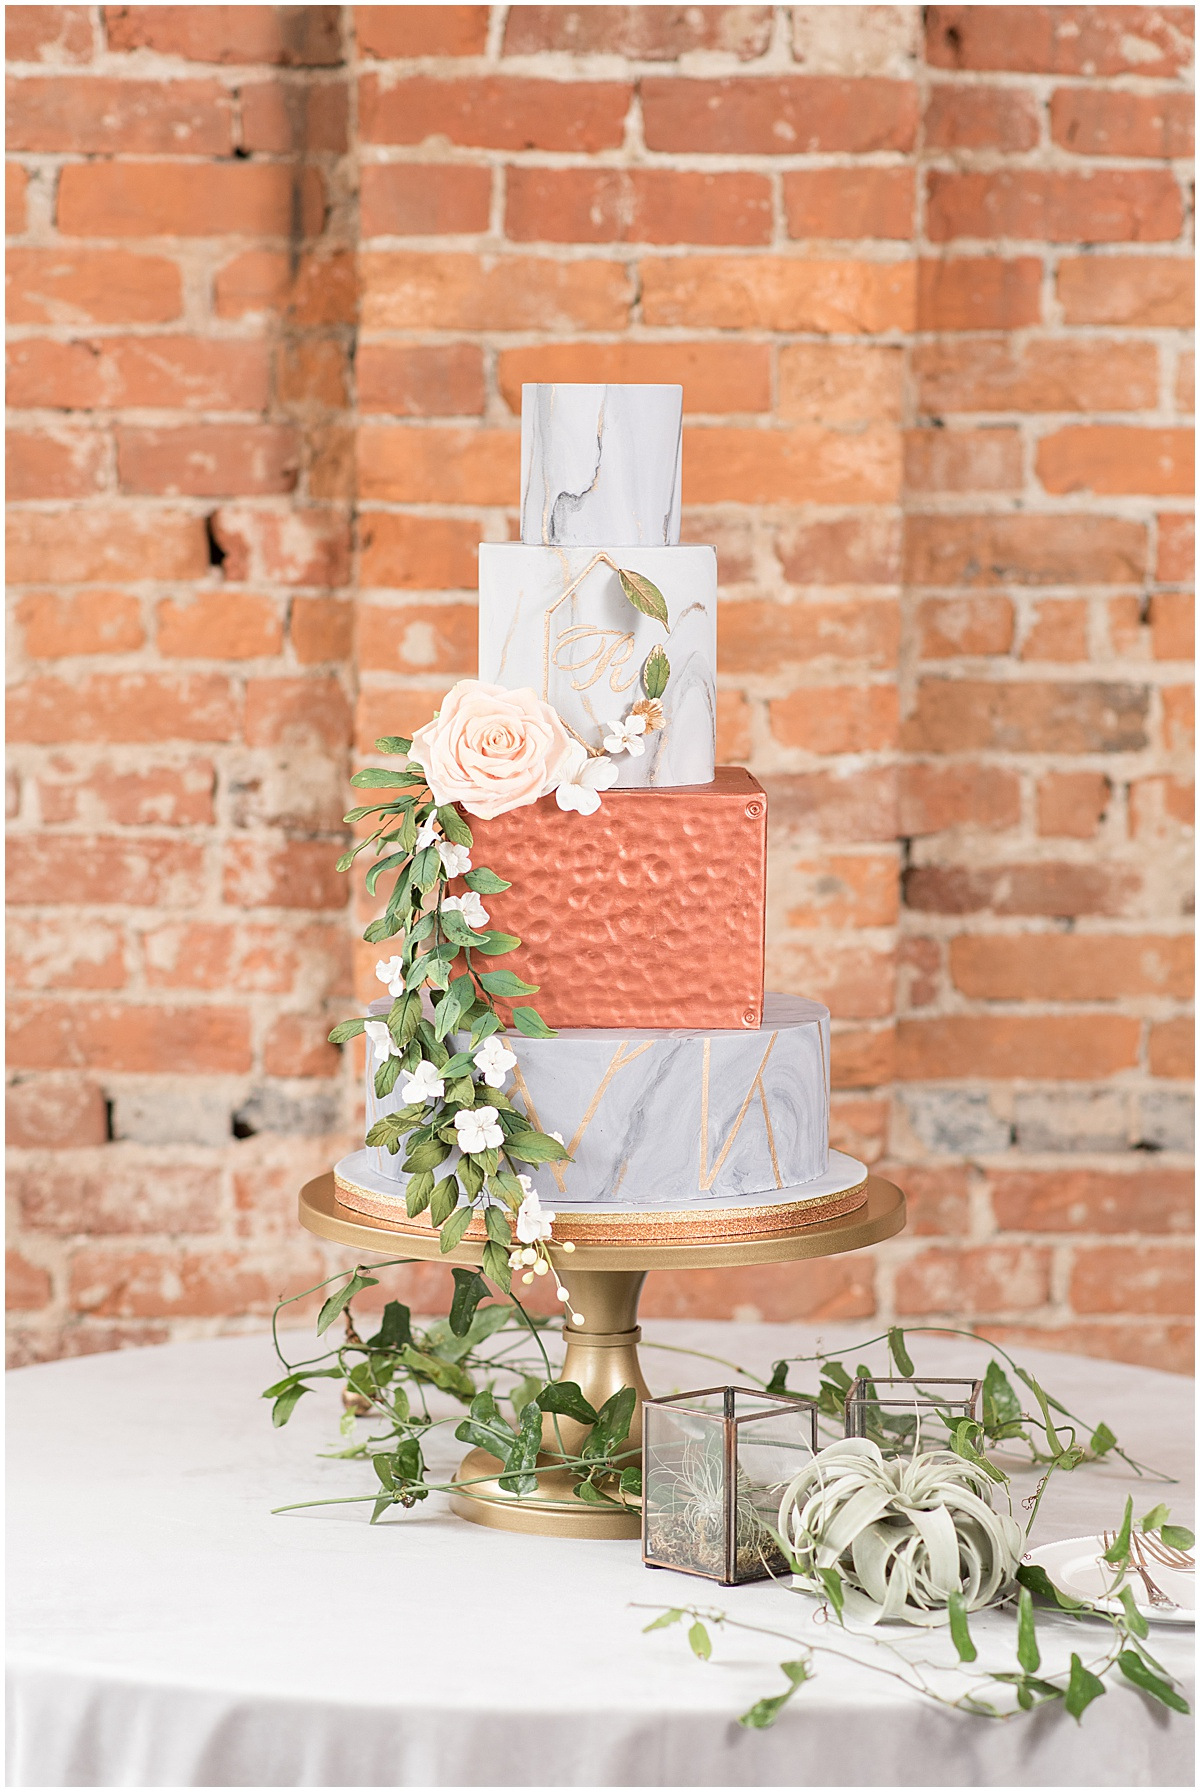 Cake made by Something Blue Bakery in Lafayette, Indiana